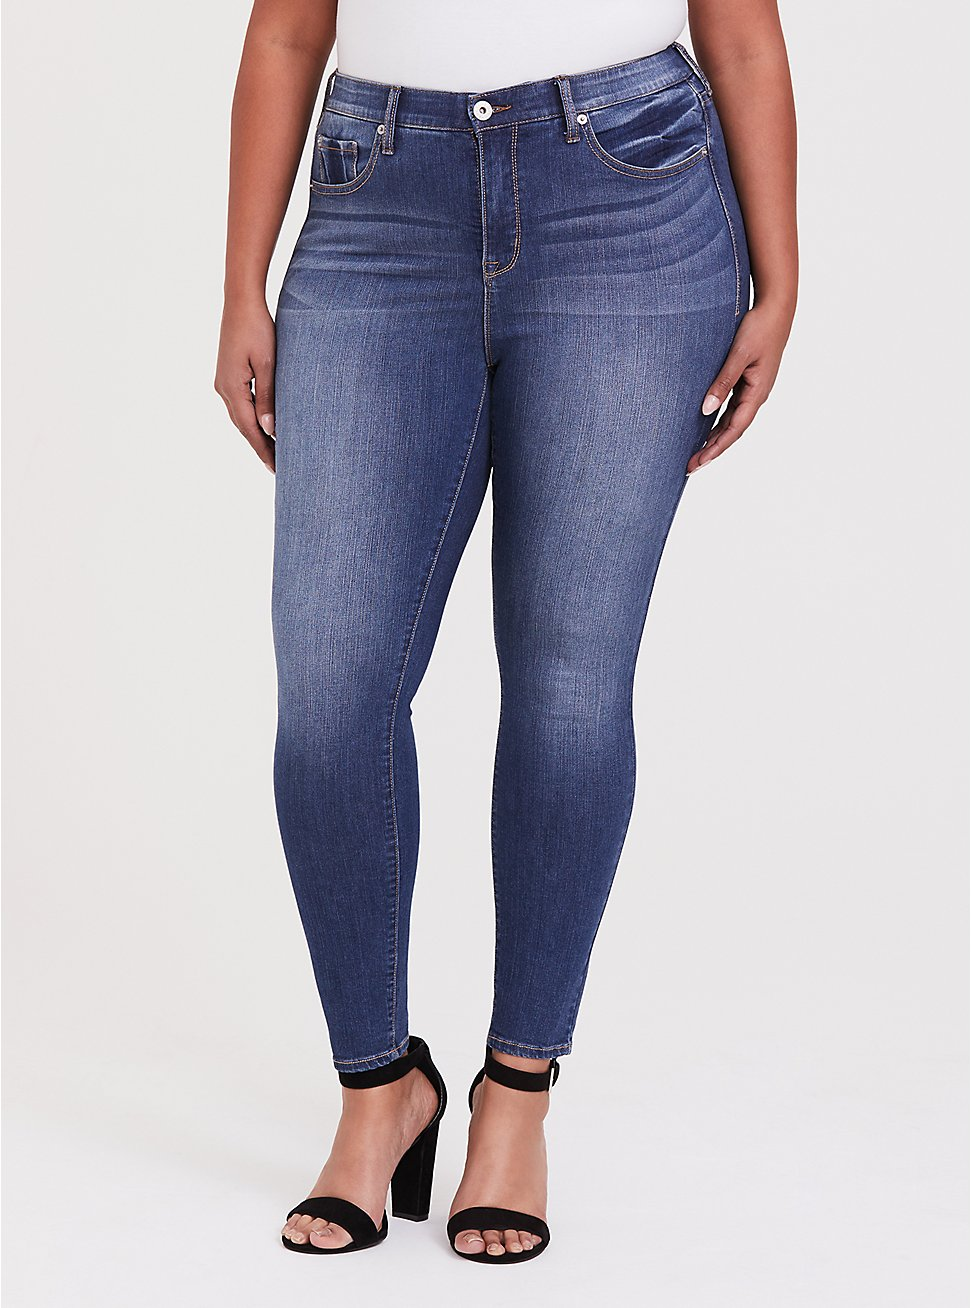 Sky High Skinny Jean - Premium Stretch Medium Wash, , hi-res